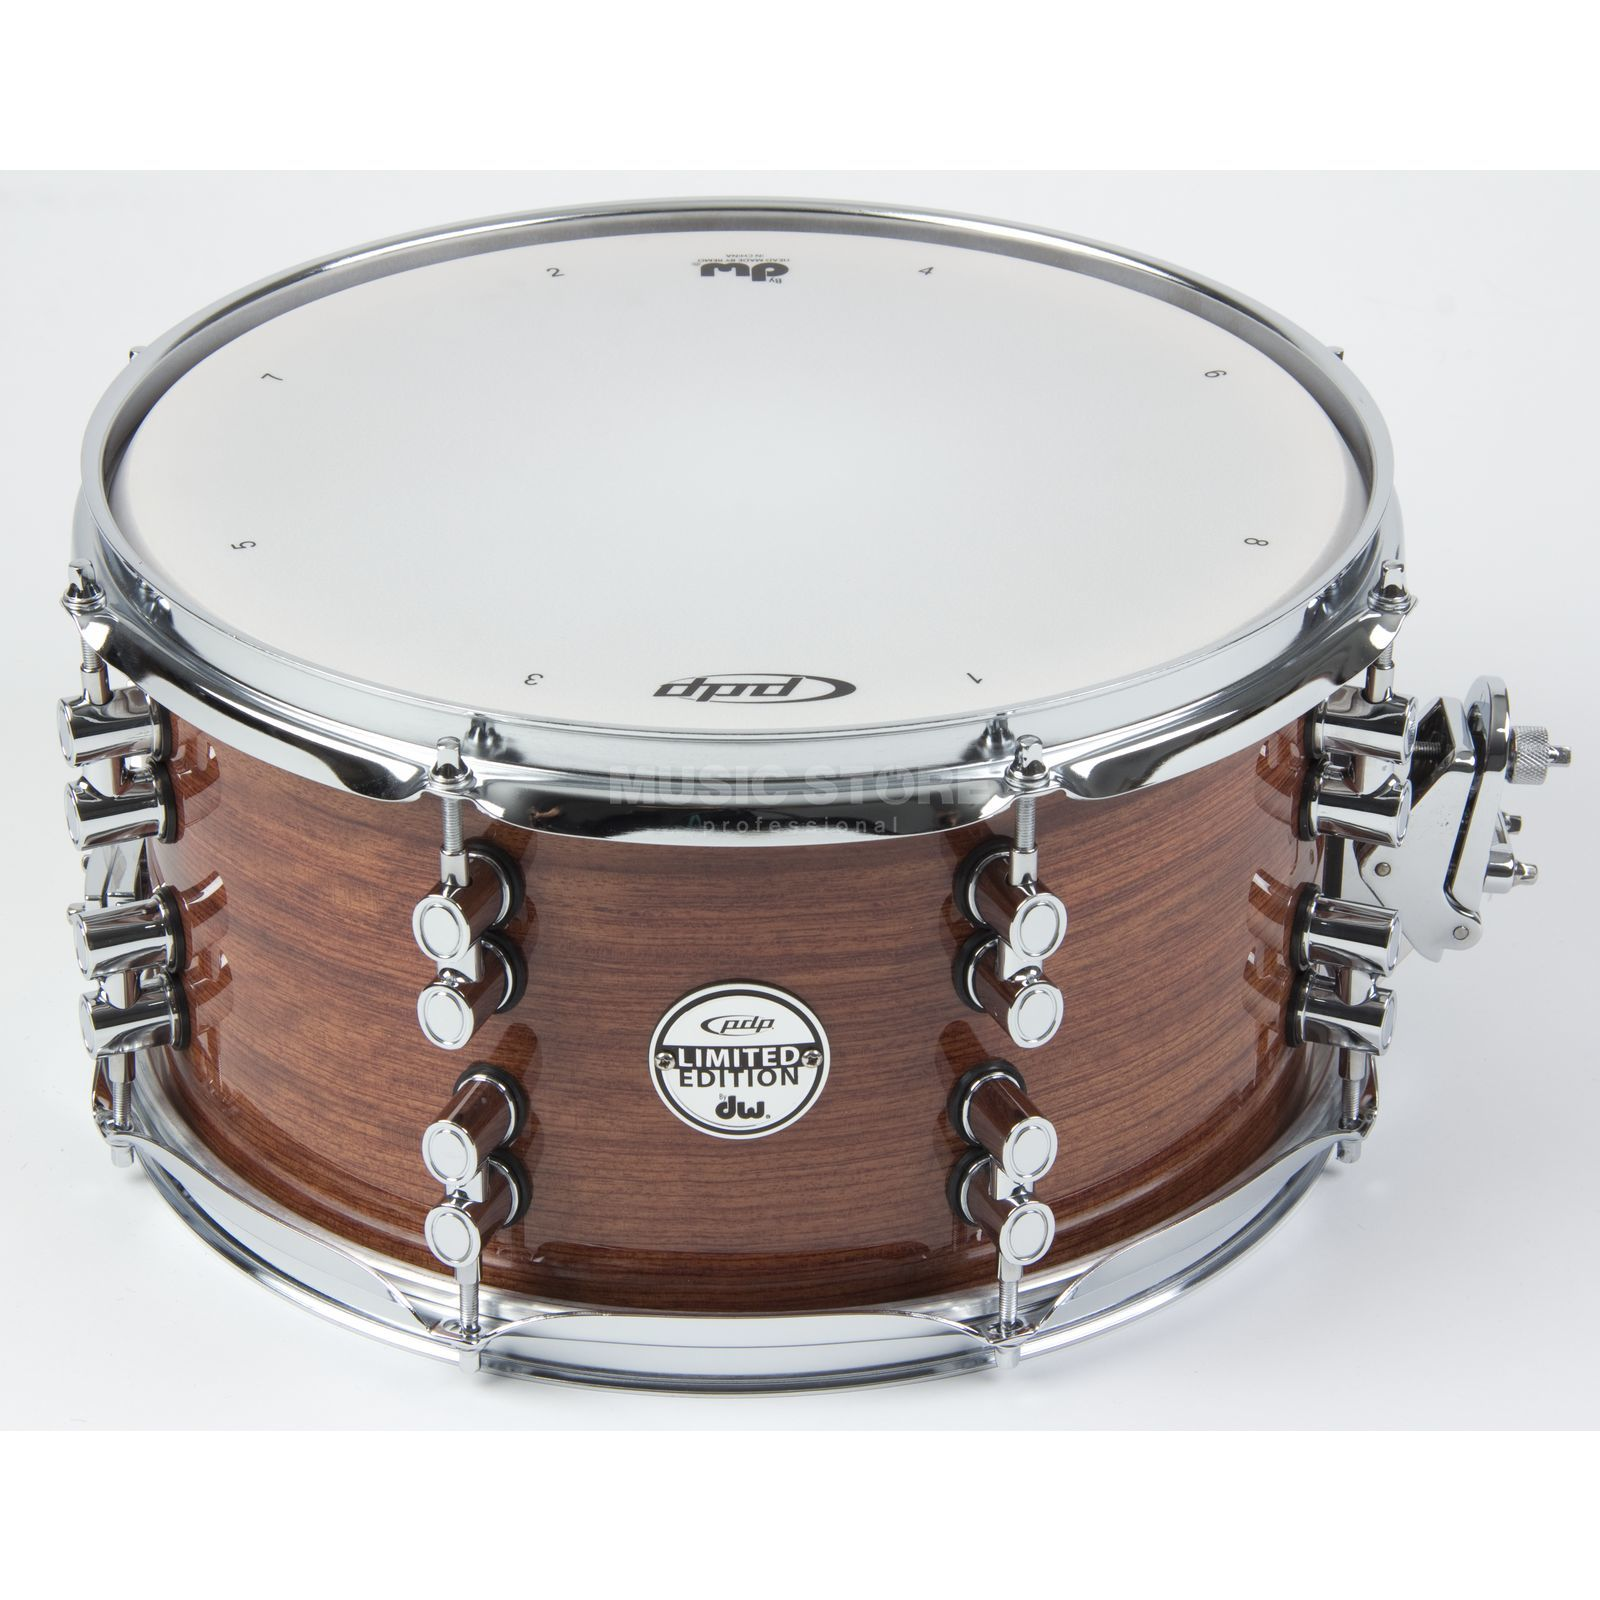 "Drum Workshop PDP Snare Liwithed Edition, 13""x7"", Bubinga/Maple Produktbillede"